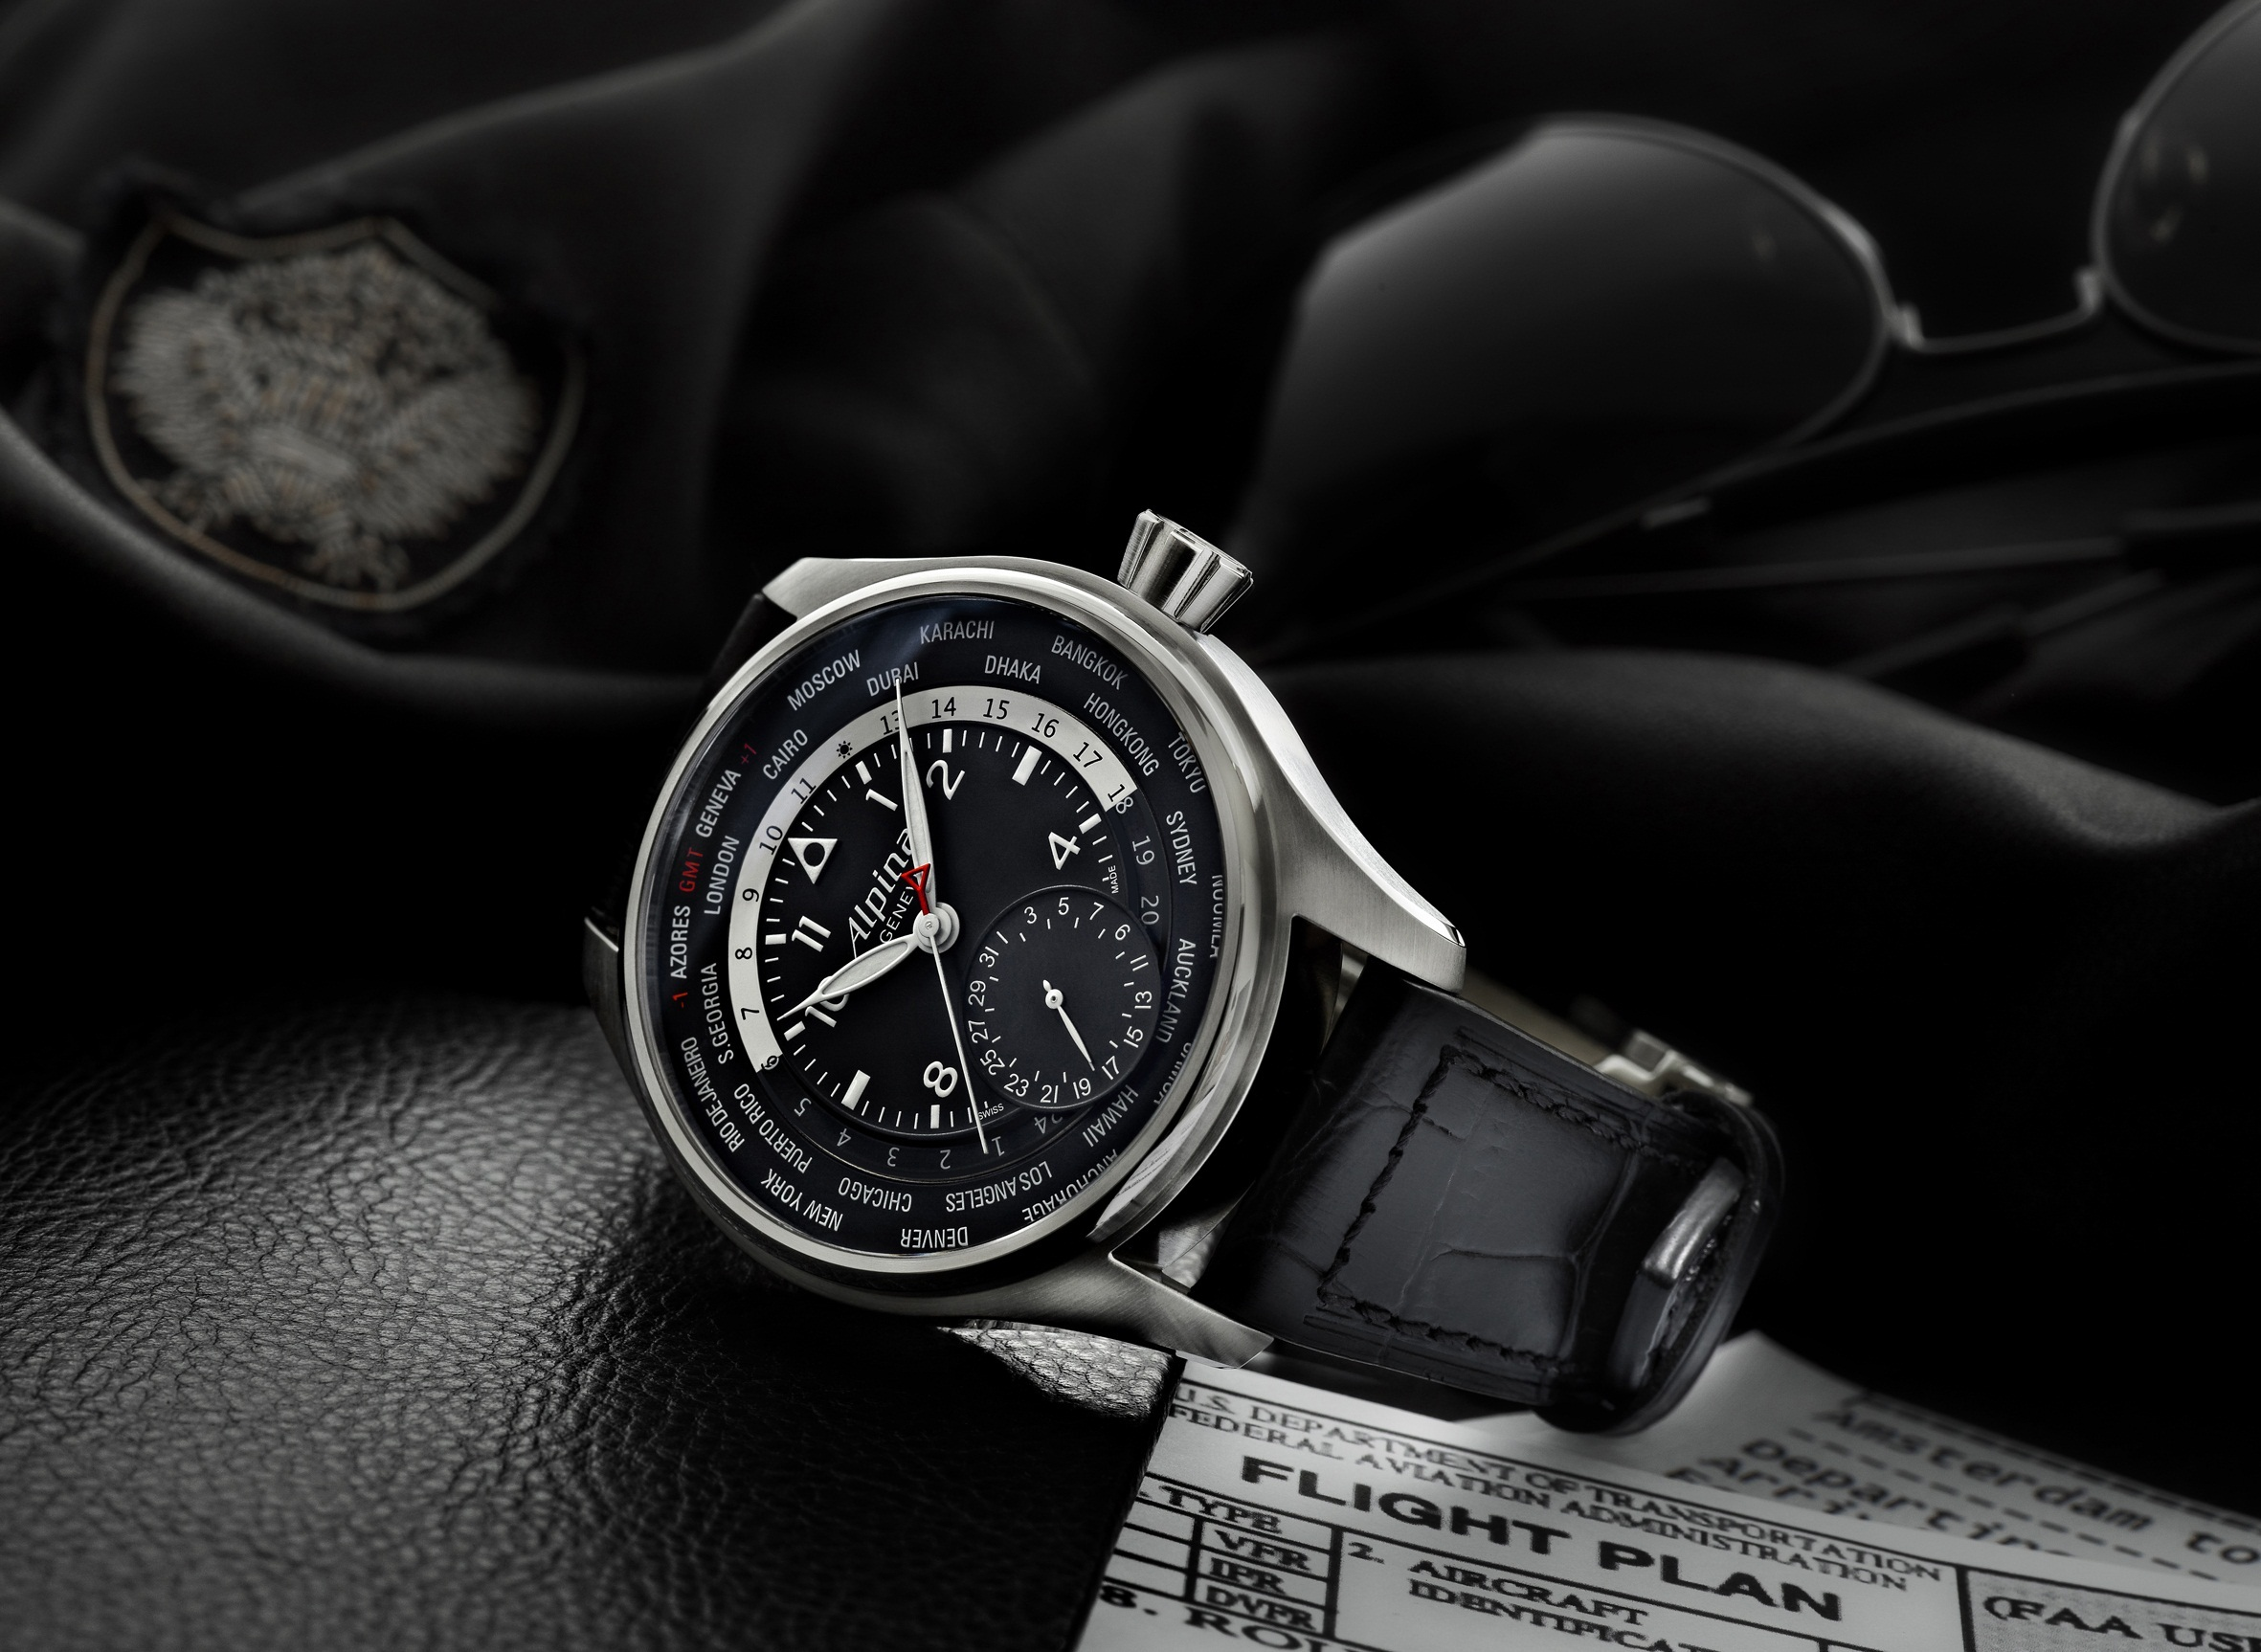 Montre Alpina Startimer Pilot World Timer Manufacture